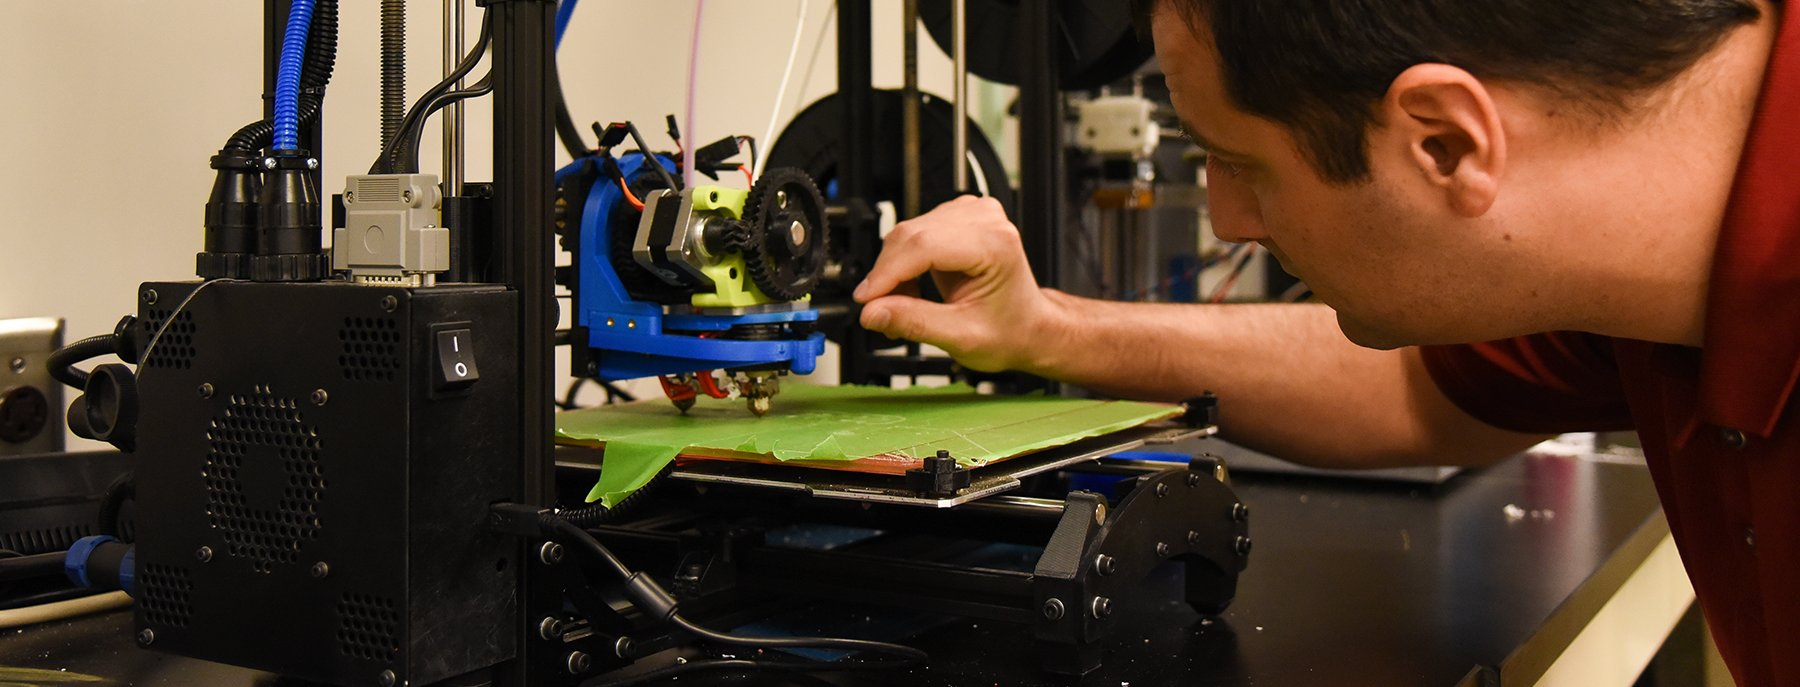 student working with a 3-D printer